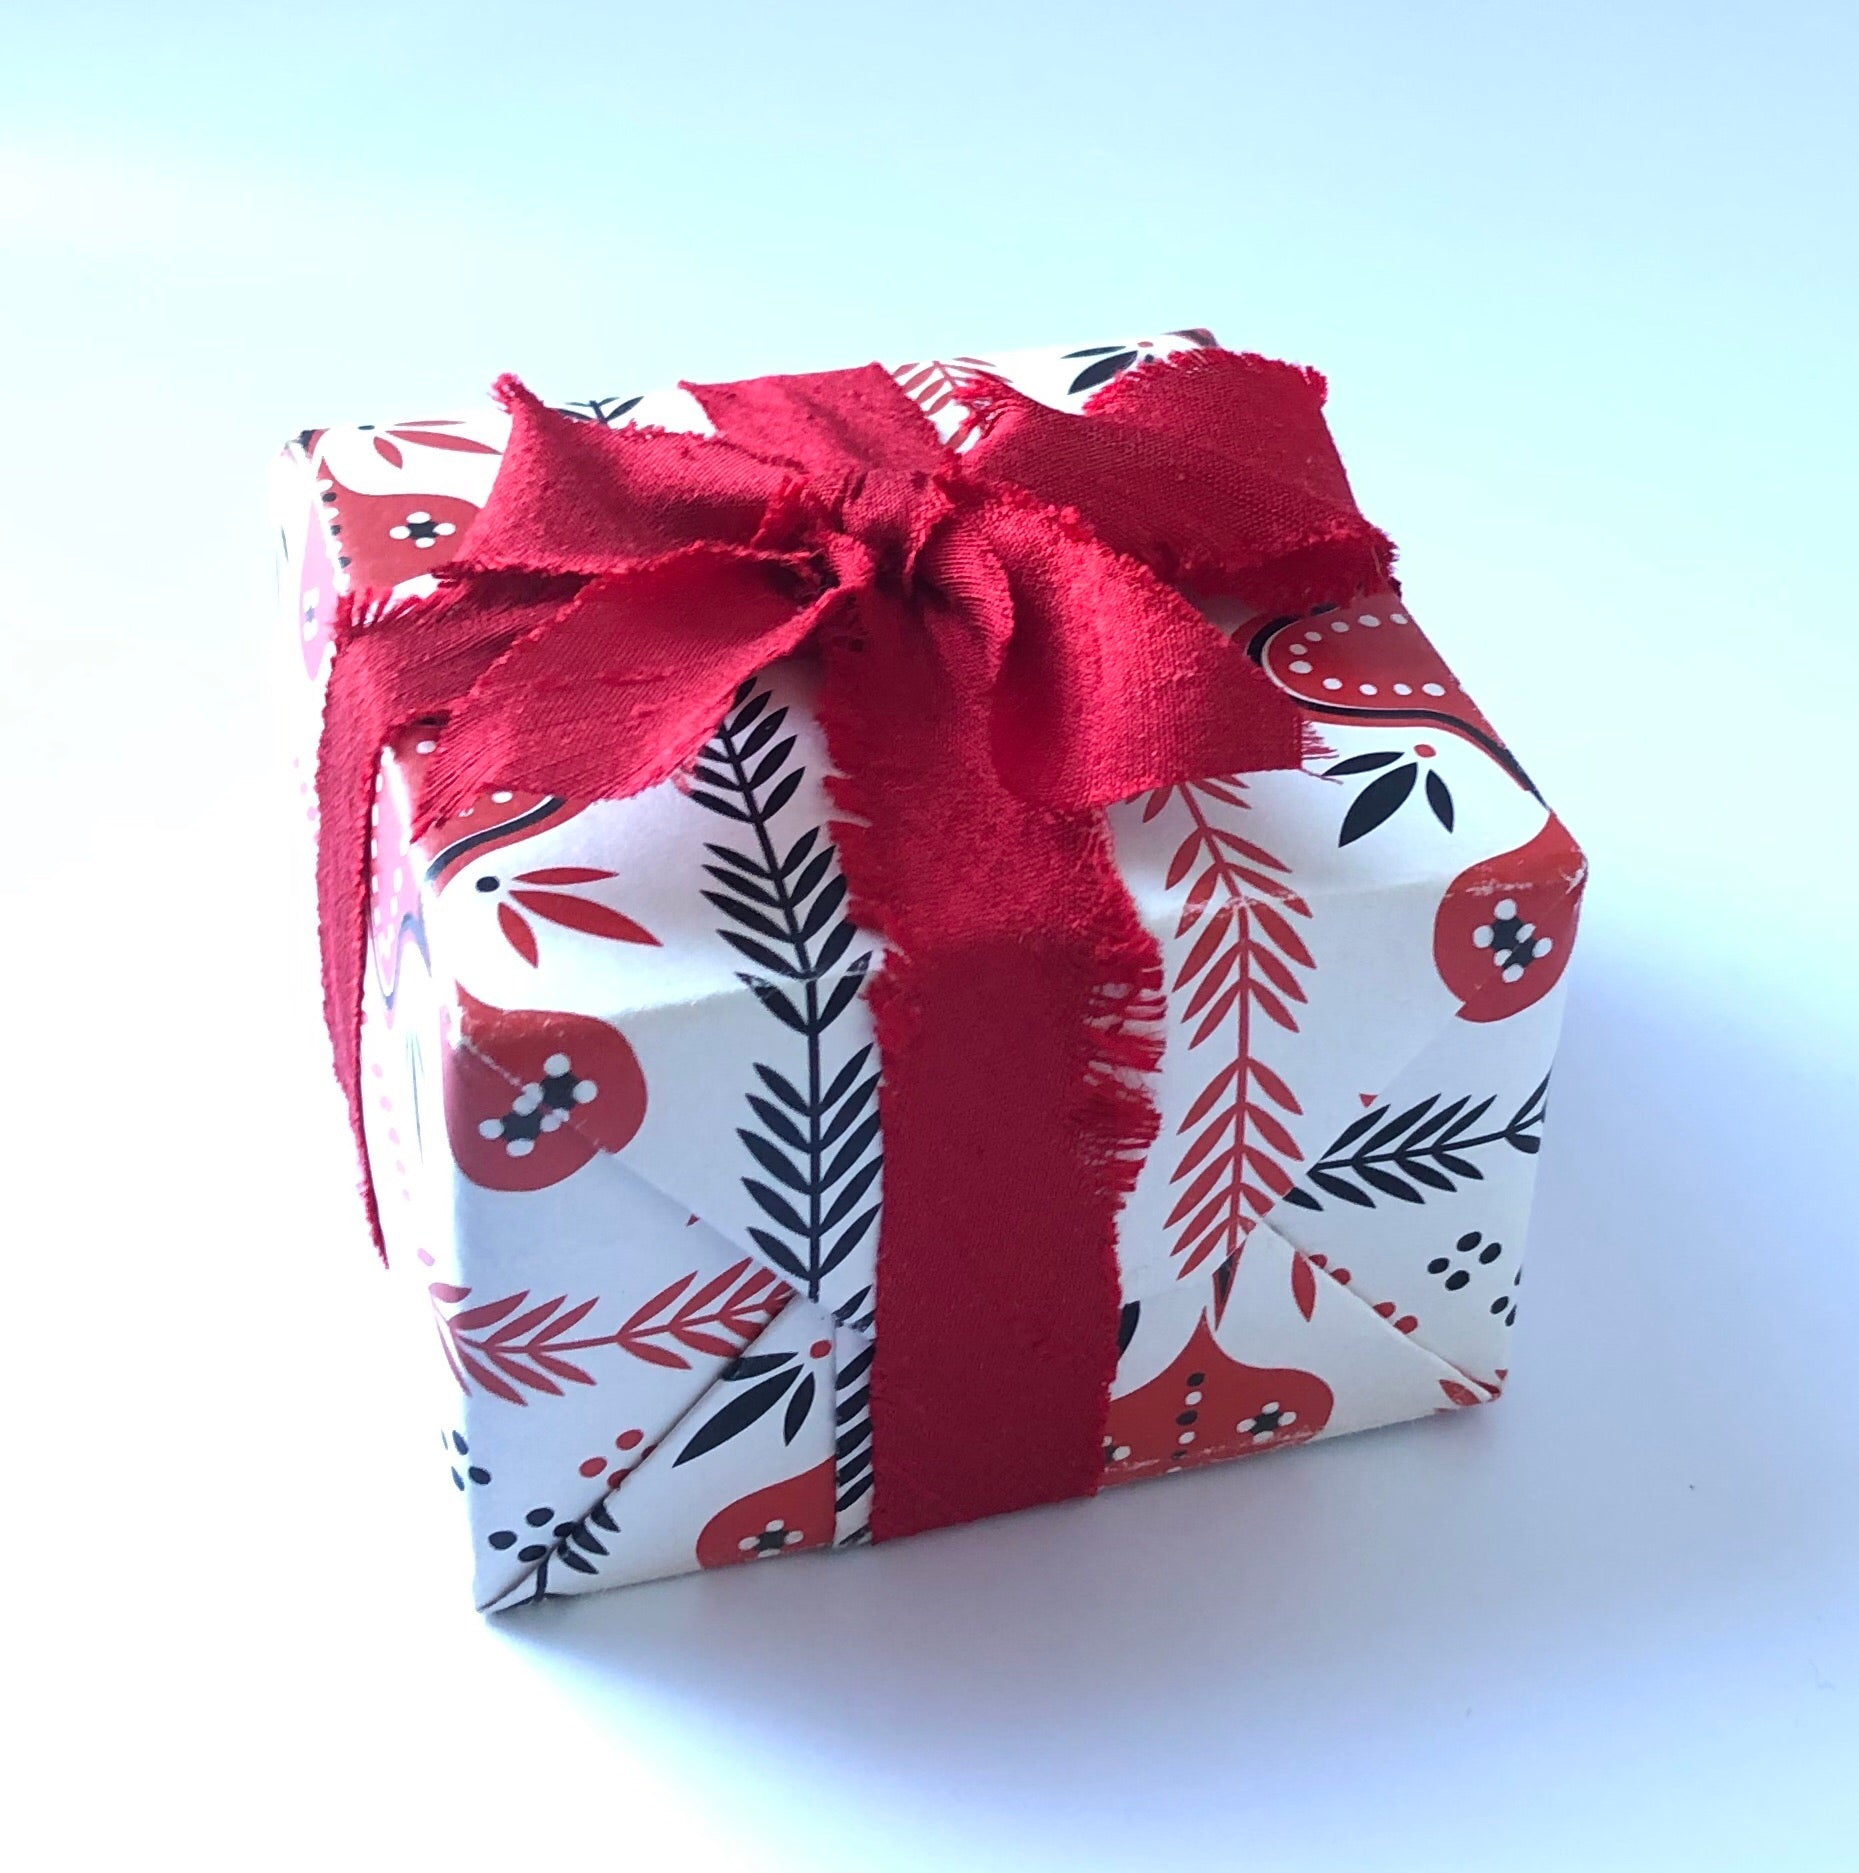 50% Deposit for 1-5 Custom Wrapped Gifts